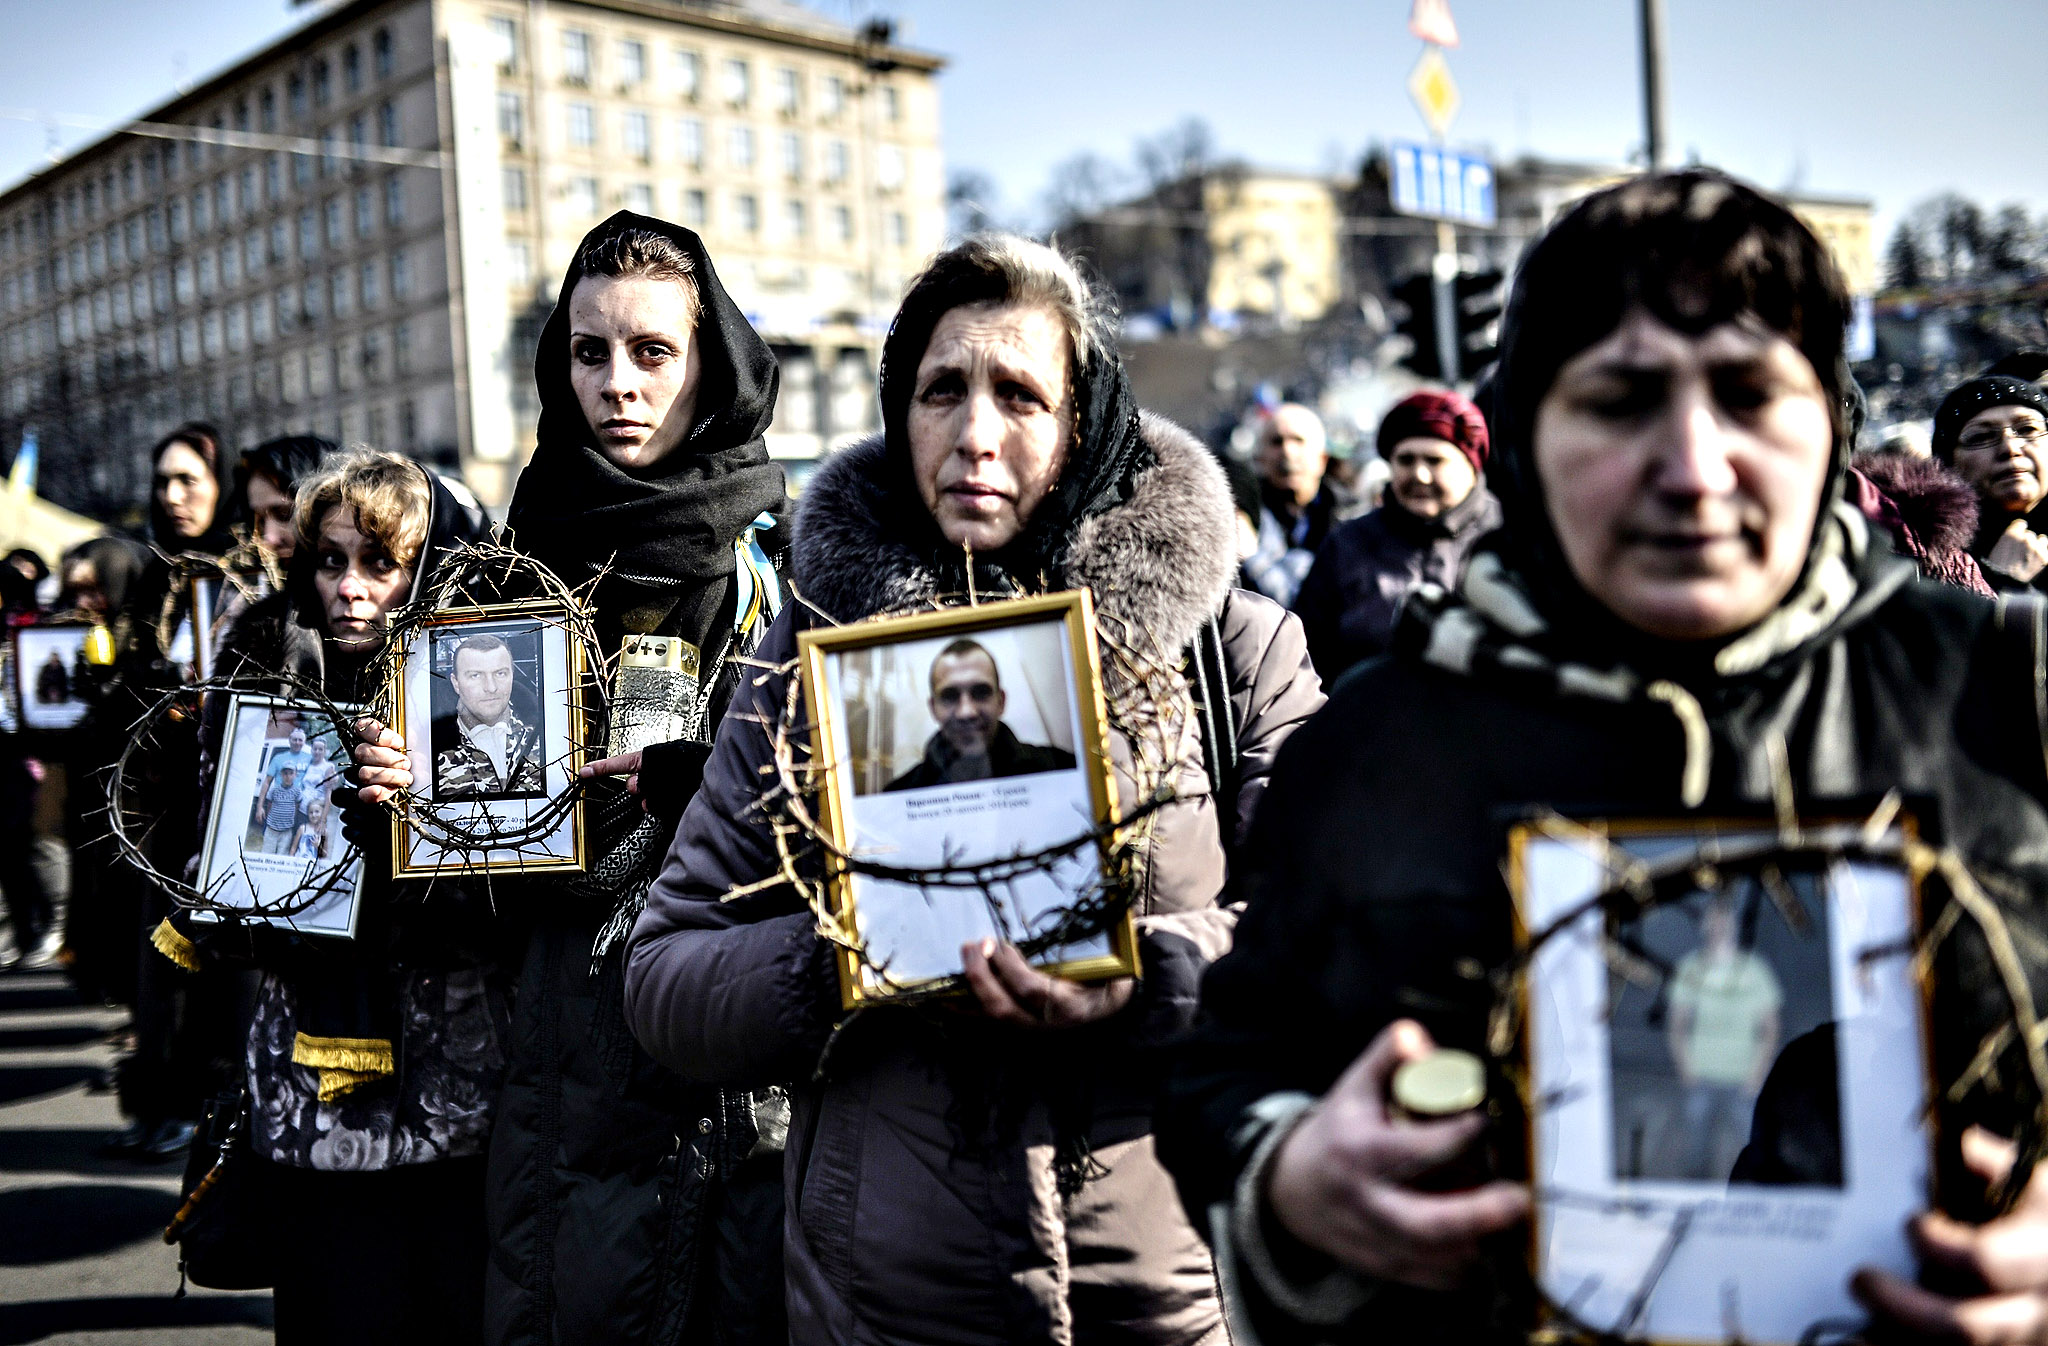 Women hold pictures of protesters who were killed in clashes with police during recent demonstrations as they take part in a commemerative procession in central Kiev on February 26, 2014. Ukraine's pro-Western interim leaders were set to unveil their new cabinet today after disbanding the feared riot police as they sought to build confidence in the splintered and economically ravaged ex-Soviet nation.